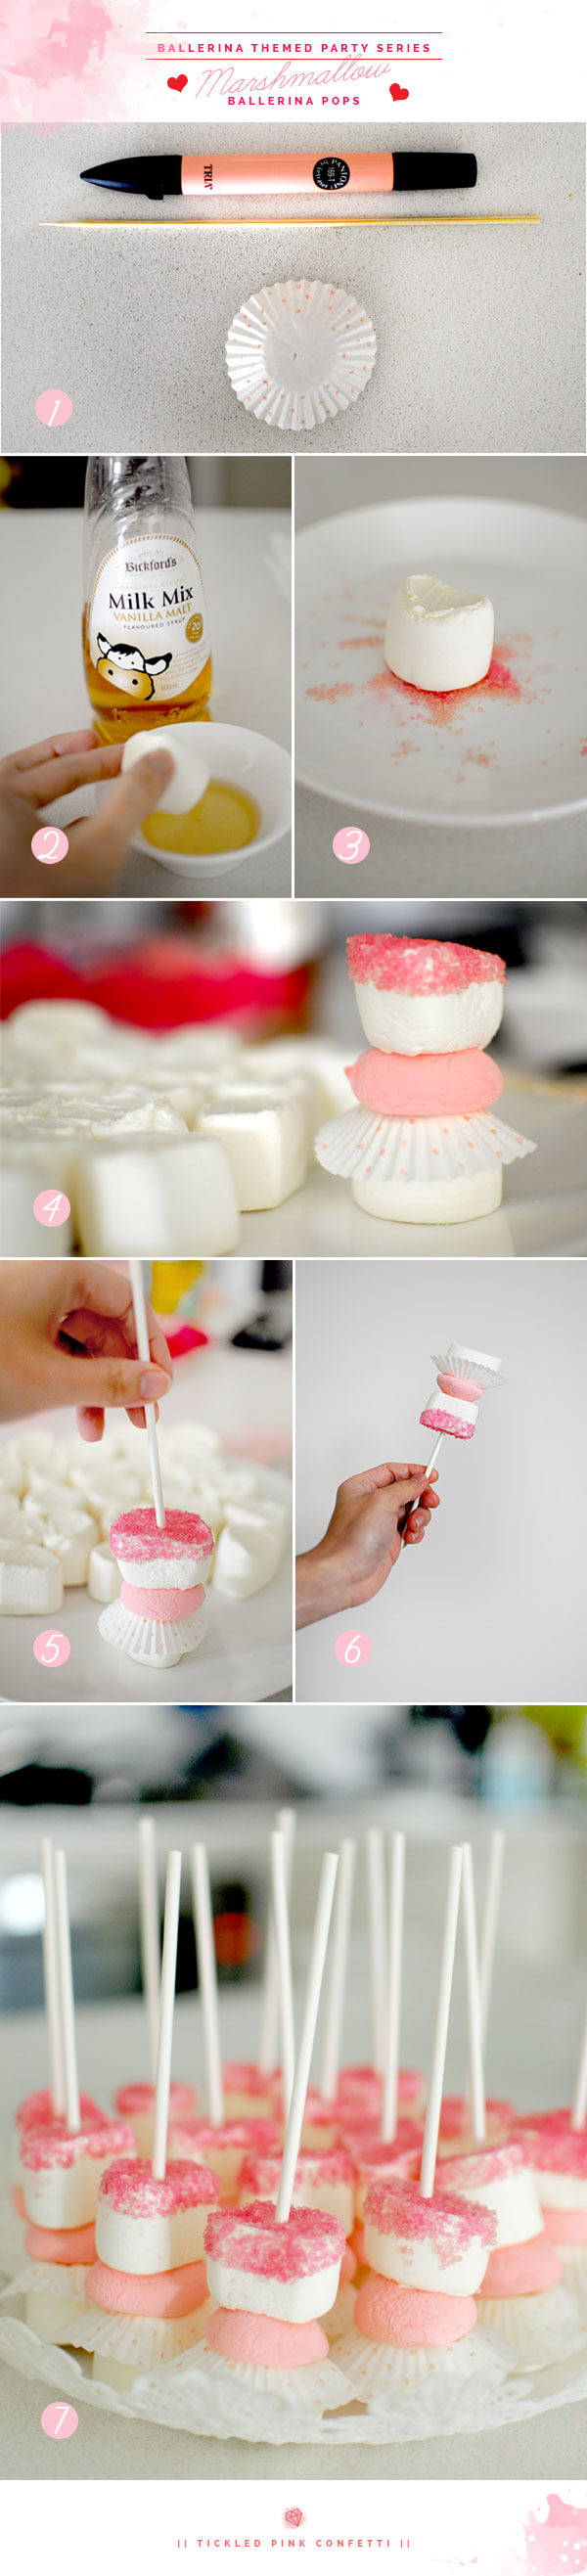 Yummy & Scrumptious Marshmallow Ballerina Pops Tutorial | Ballerina Themed Birthday Party Series